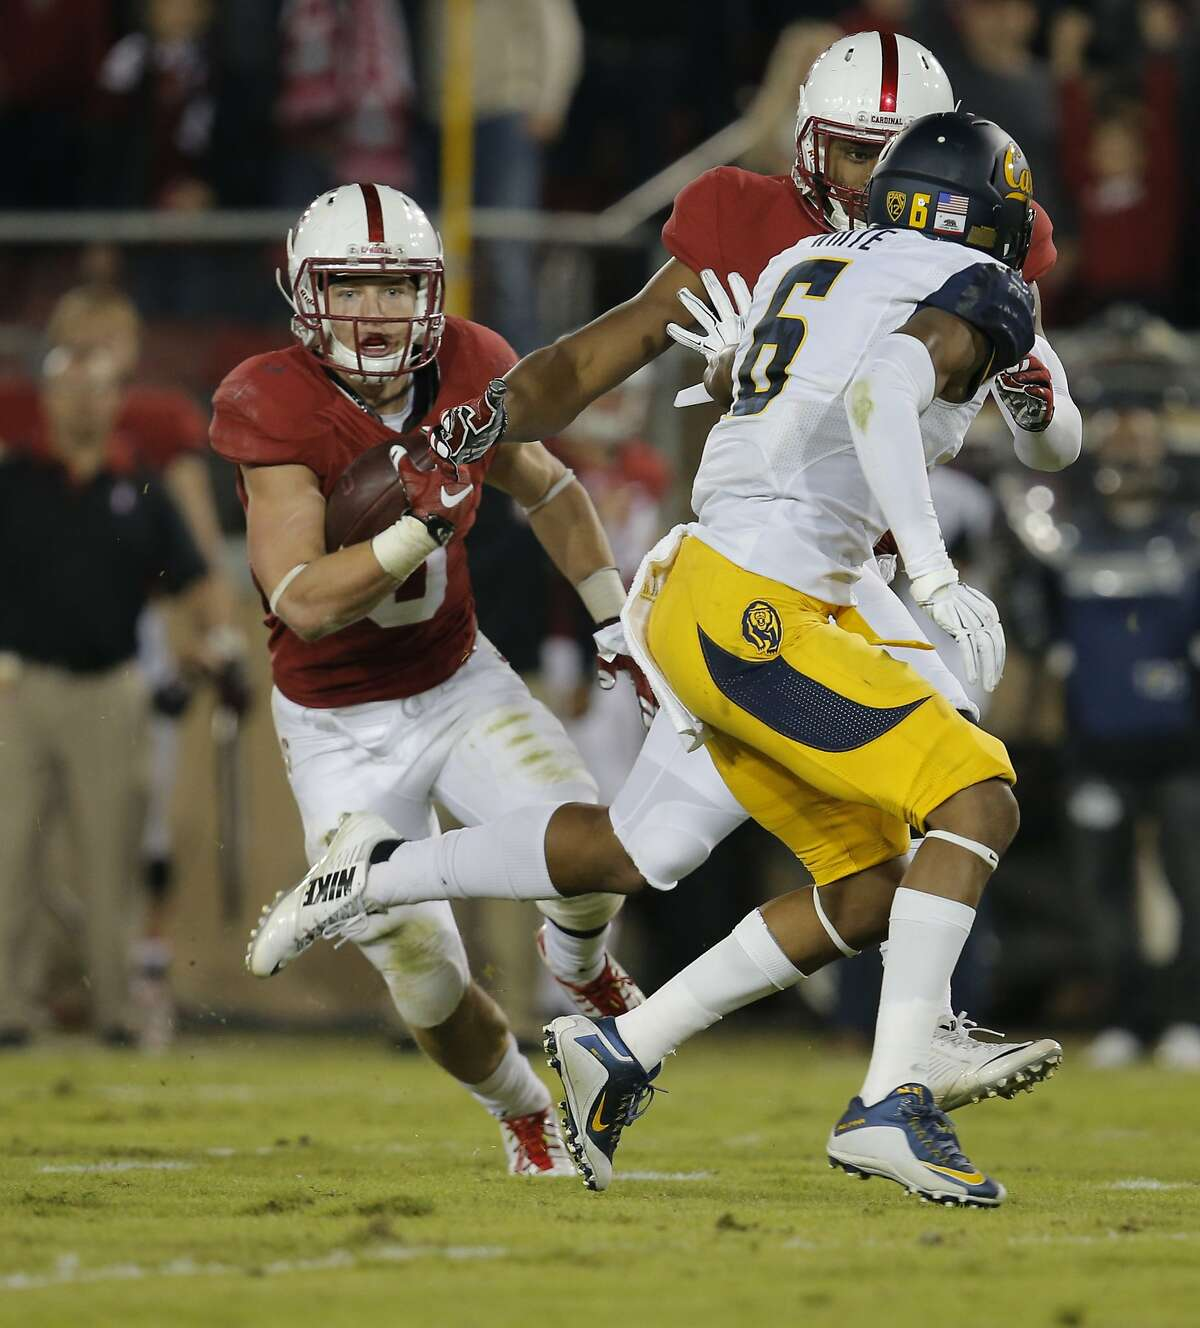 Stanford's Christian McCaffrey, 5 cuts across the field as he heads to the end zone on a fifty yard pass and run in the second quarter, as Stanford takes on California in the 118th Big Game at Stanford Stadium, on Sat. November 21, 2015, in Stanford, Calif.